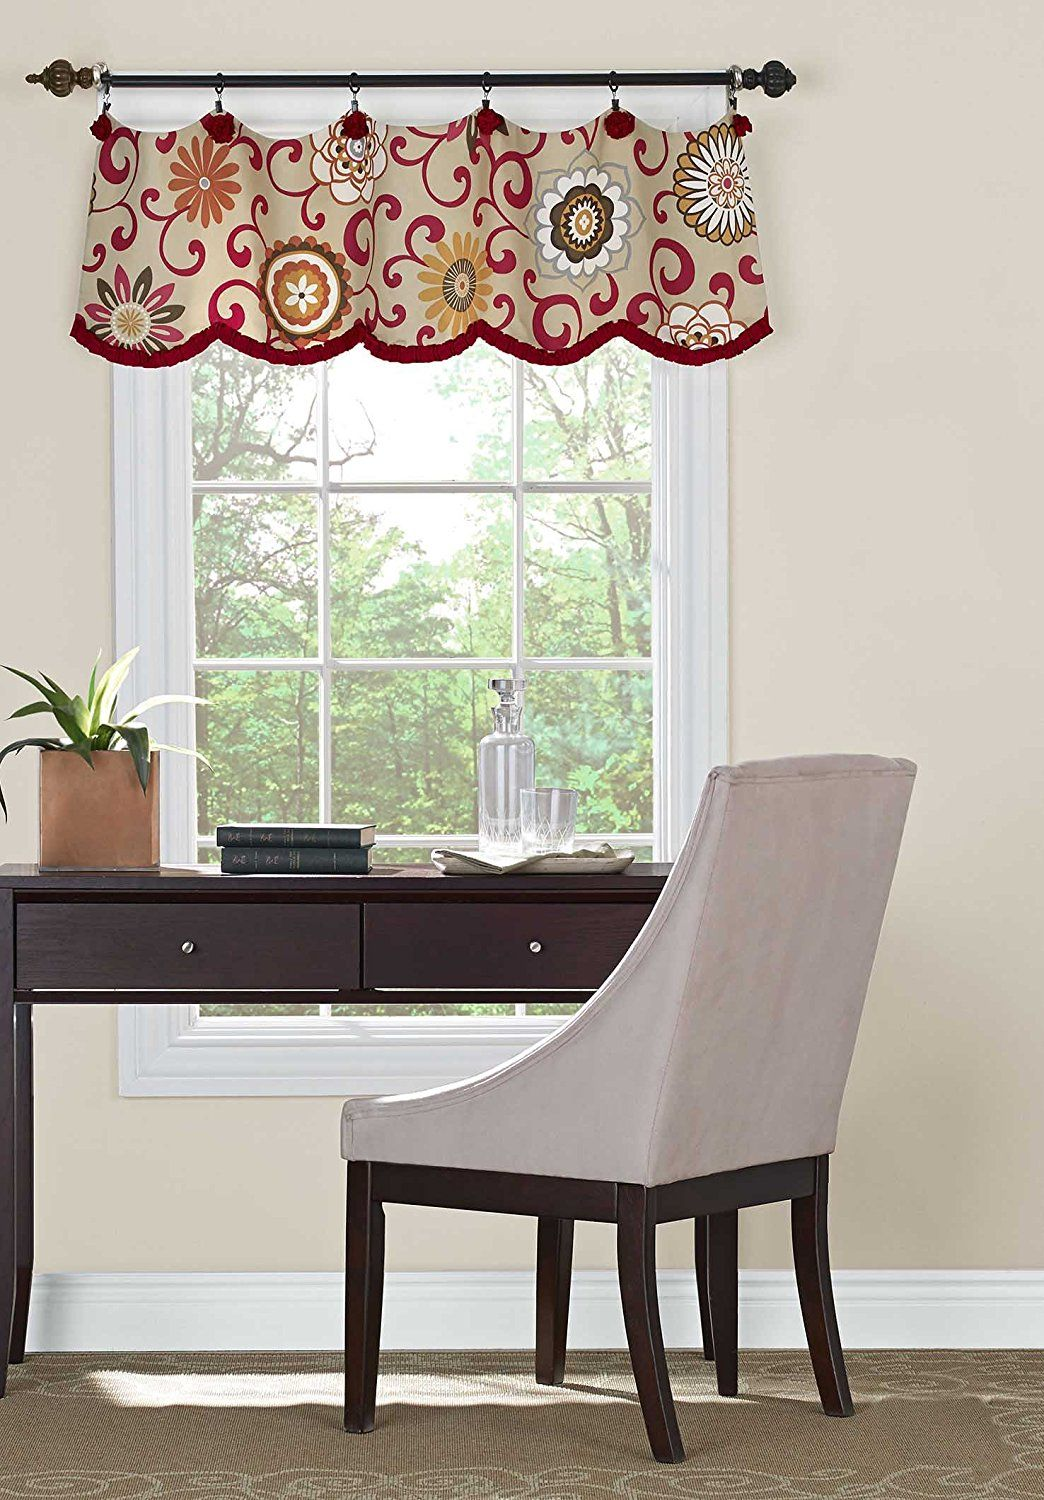 Simplicity Creative Patterns 1383 Valances For 36 Inch To 40 Inch Wide Windows Bedroom Curtains With Blinds Living Room Blinds Kitchen Window Valances